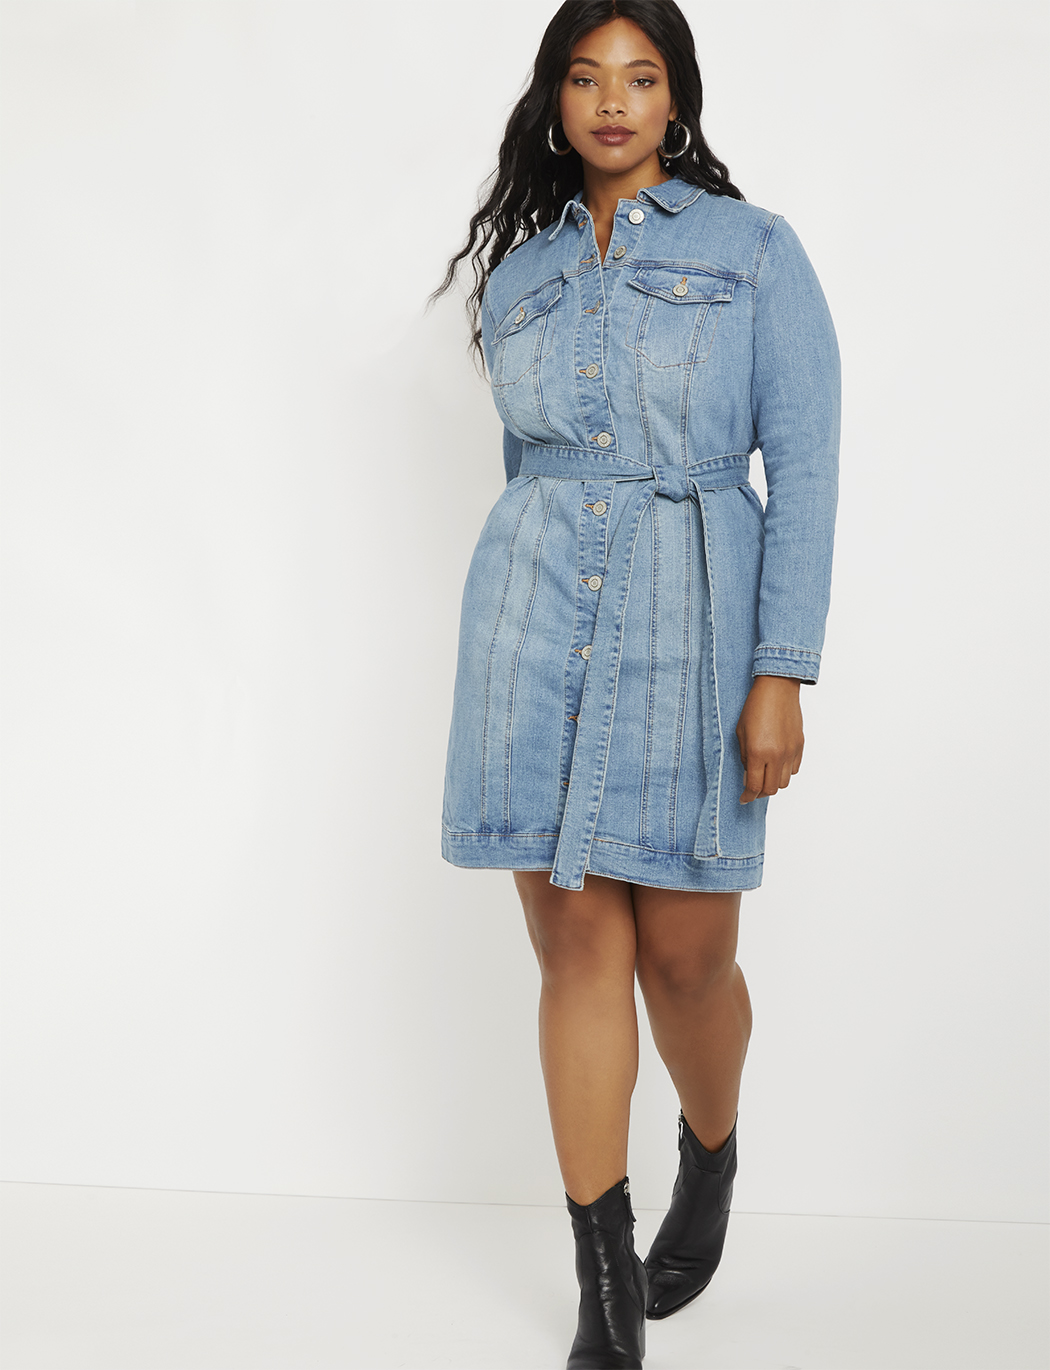 0cc8fff519a Denim Jacket Dress